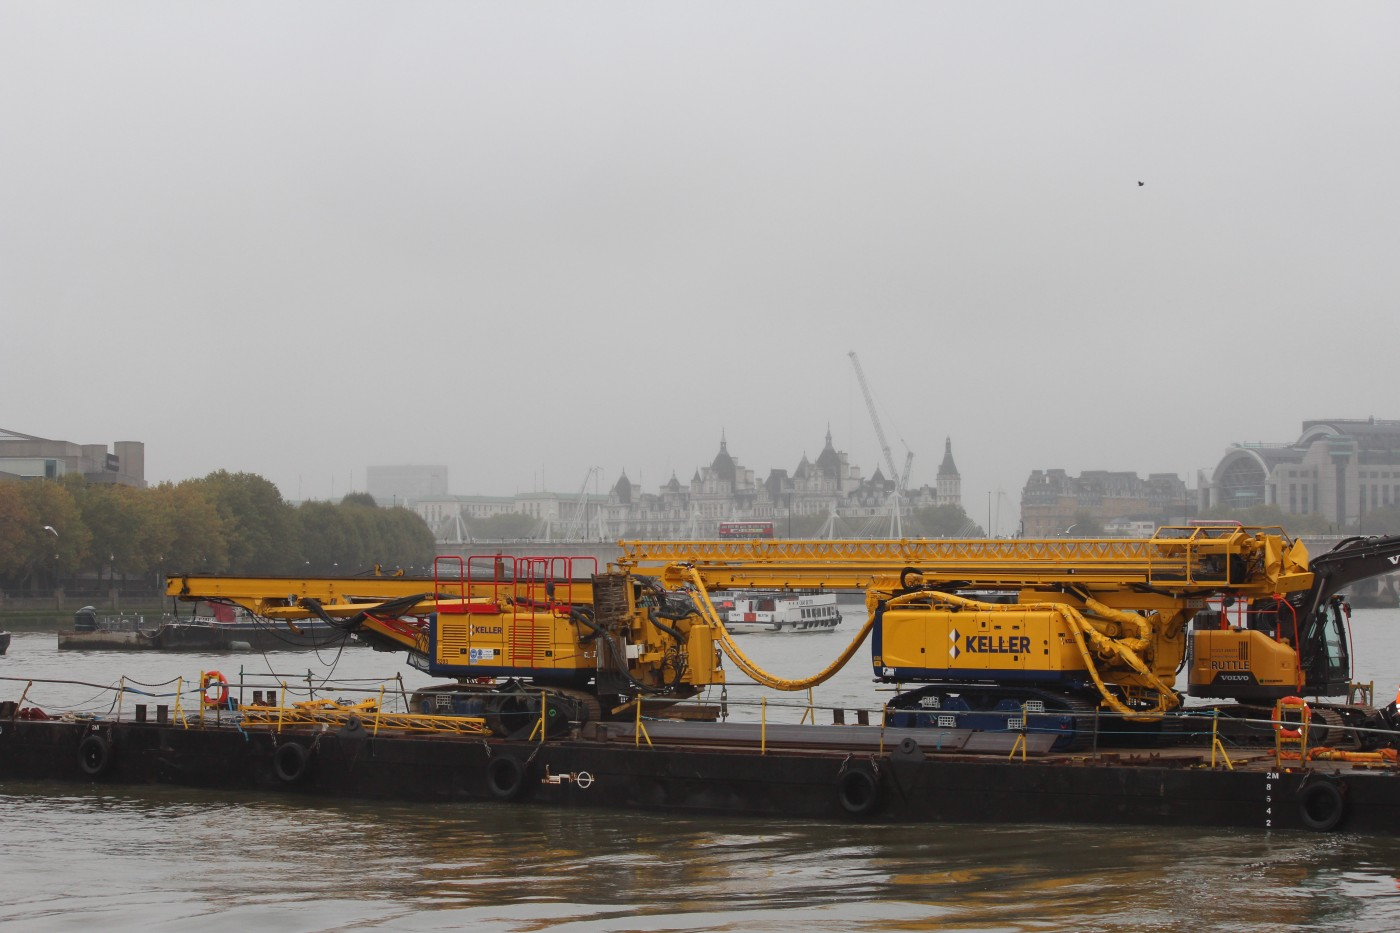 The Keller rigs delivered to site by barge